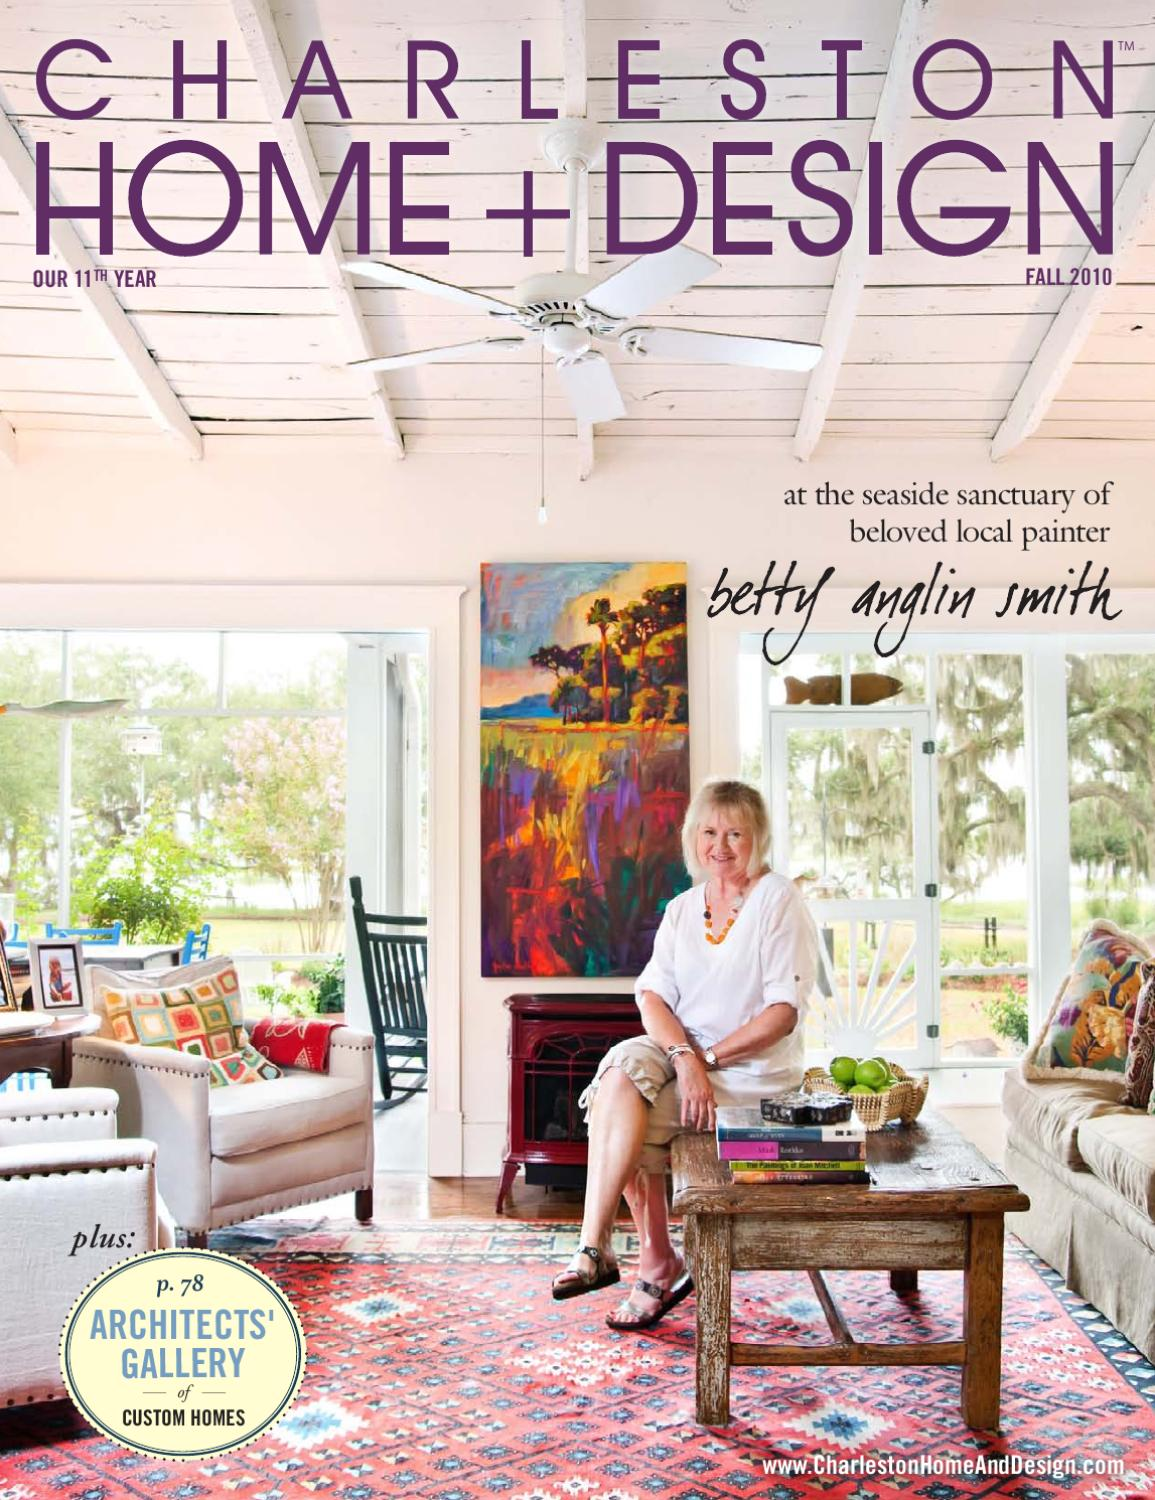 Issuu charleston home design fall 2010 by charleston for Charleston home and design